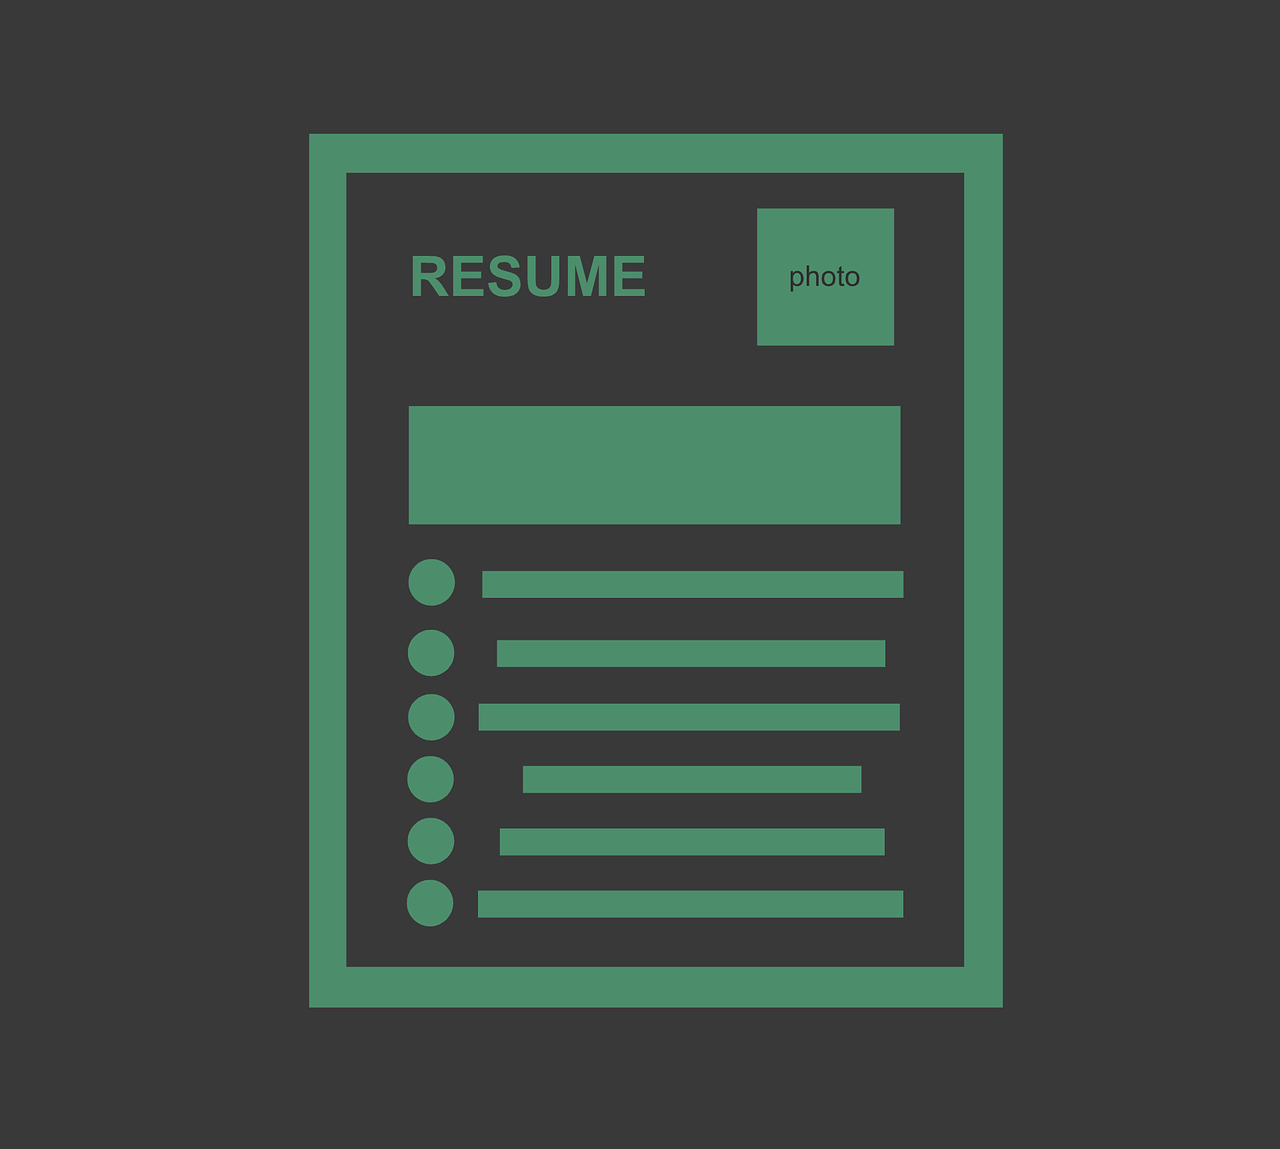 resume-1799953_1280.png